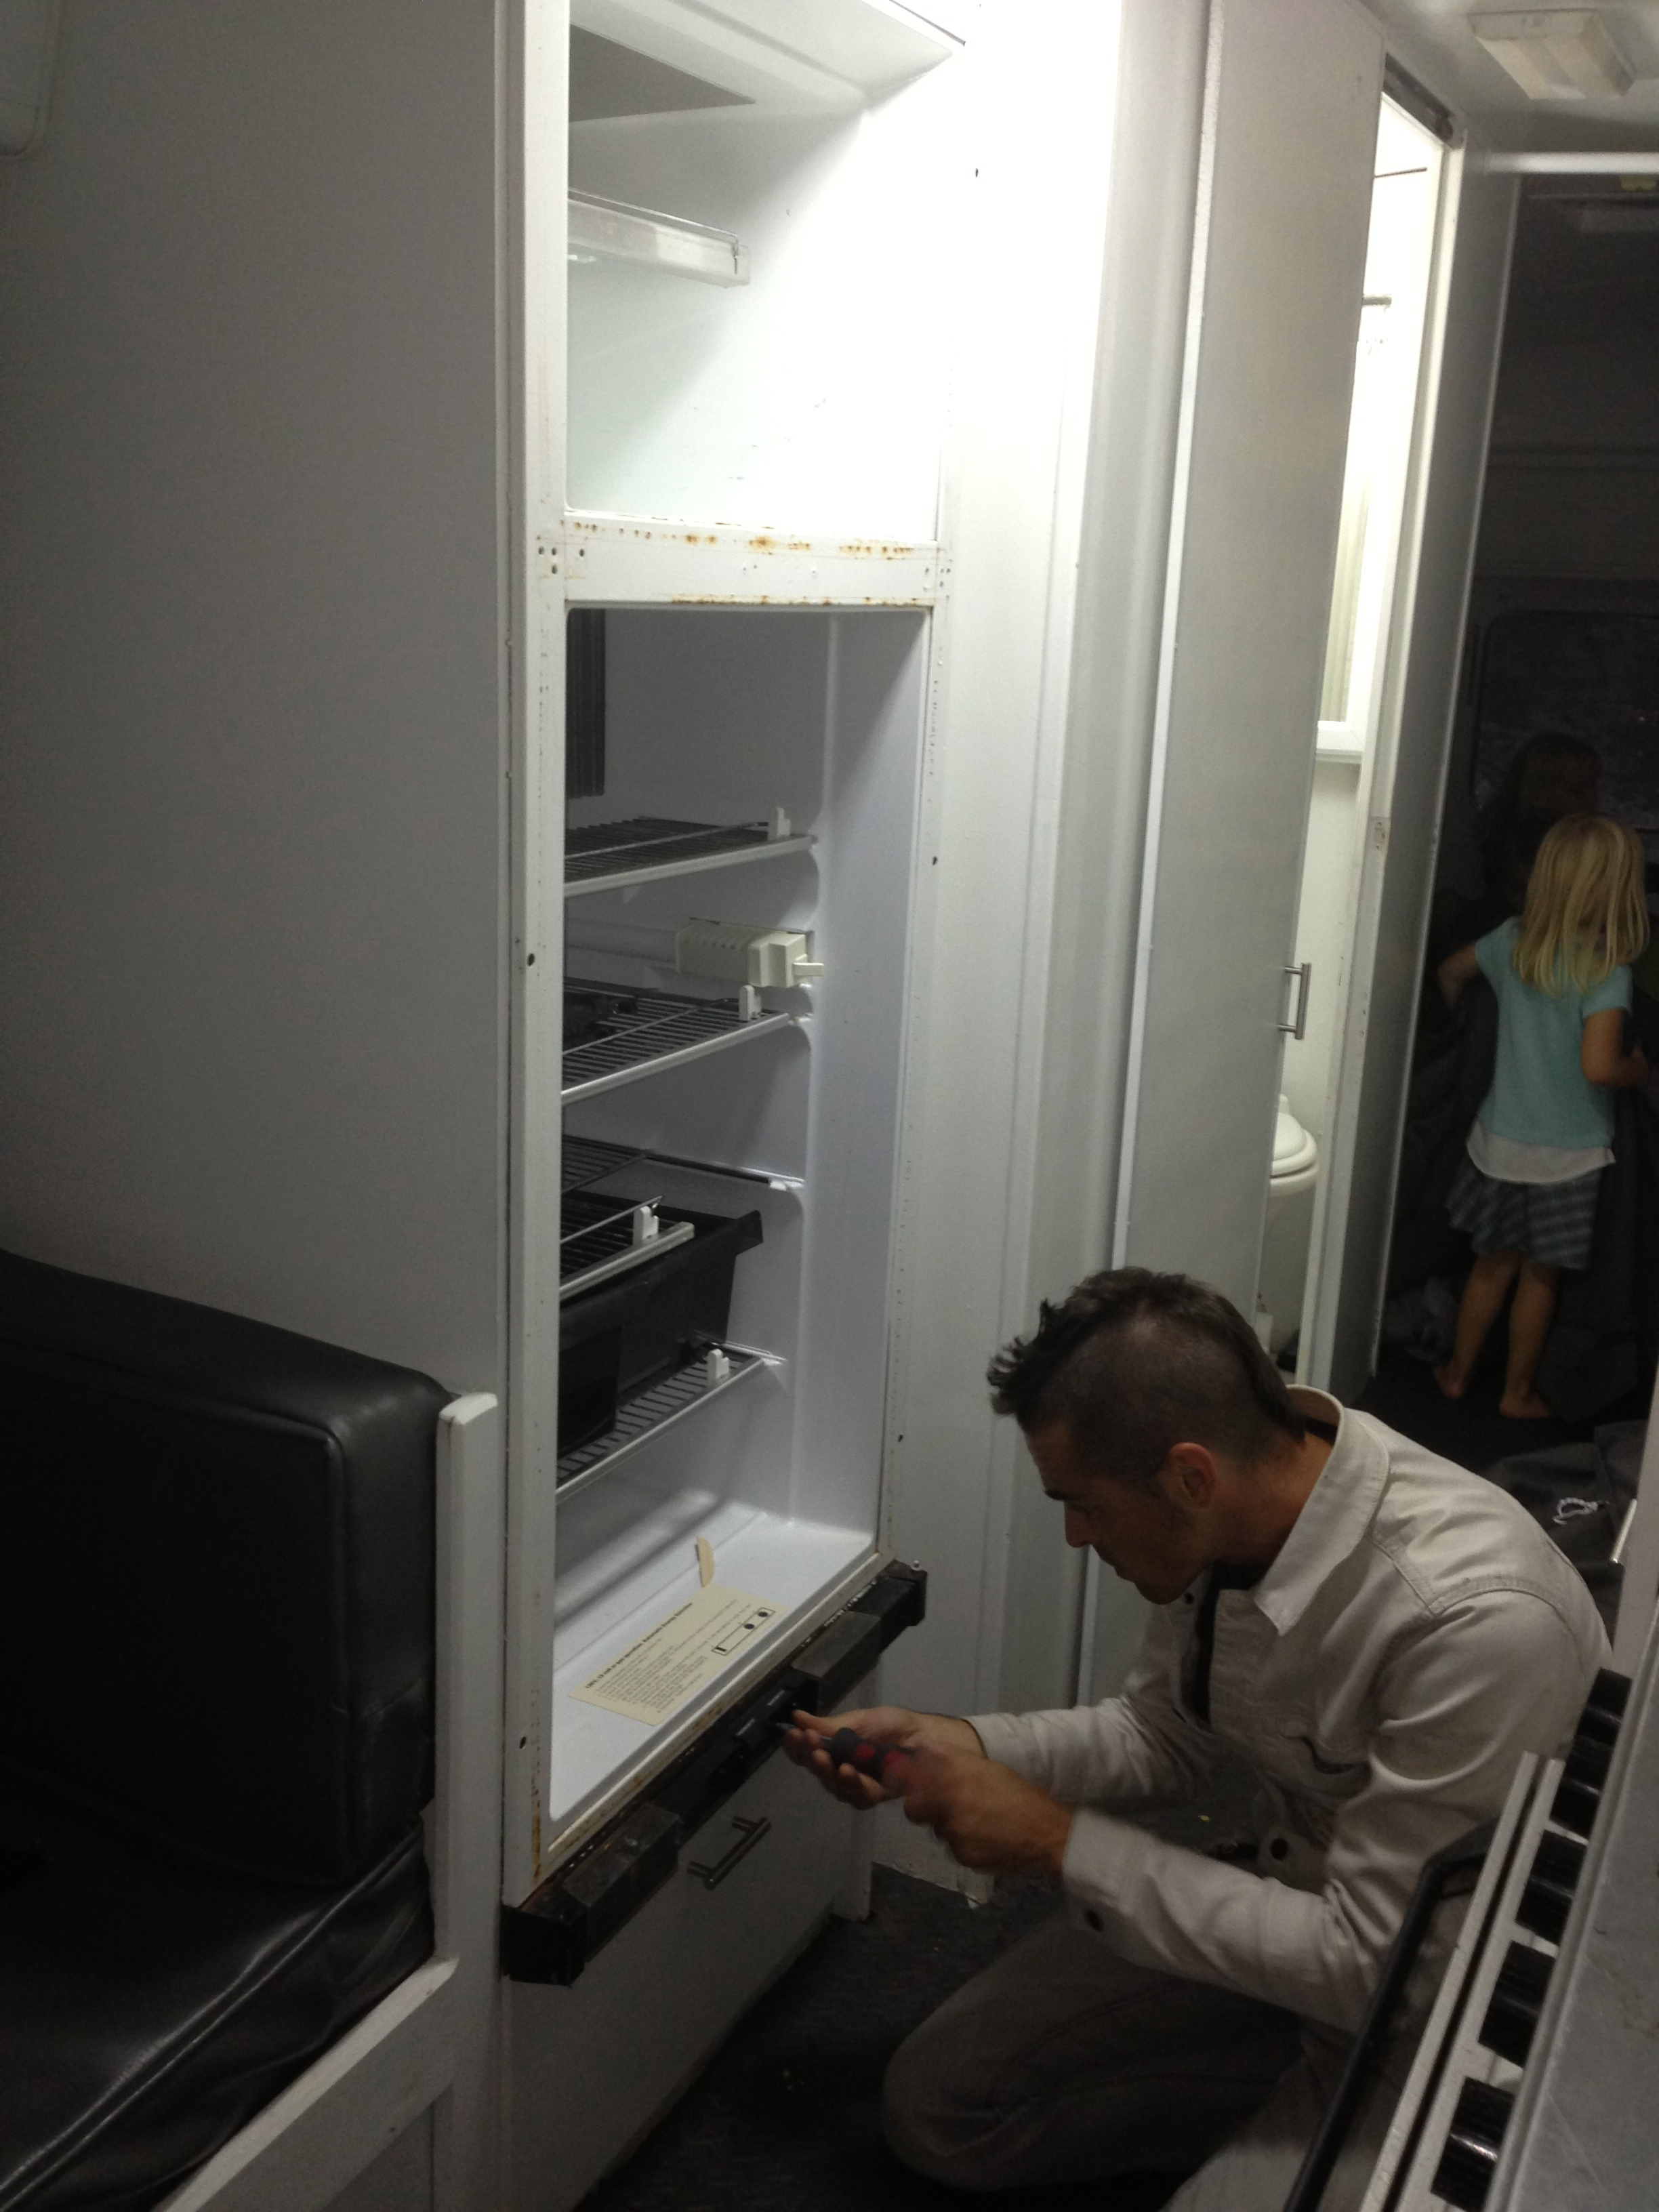 This is what being a rockstar looks like... replacing the refrigerator.